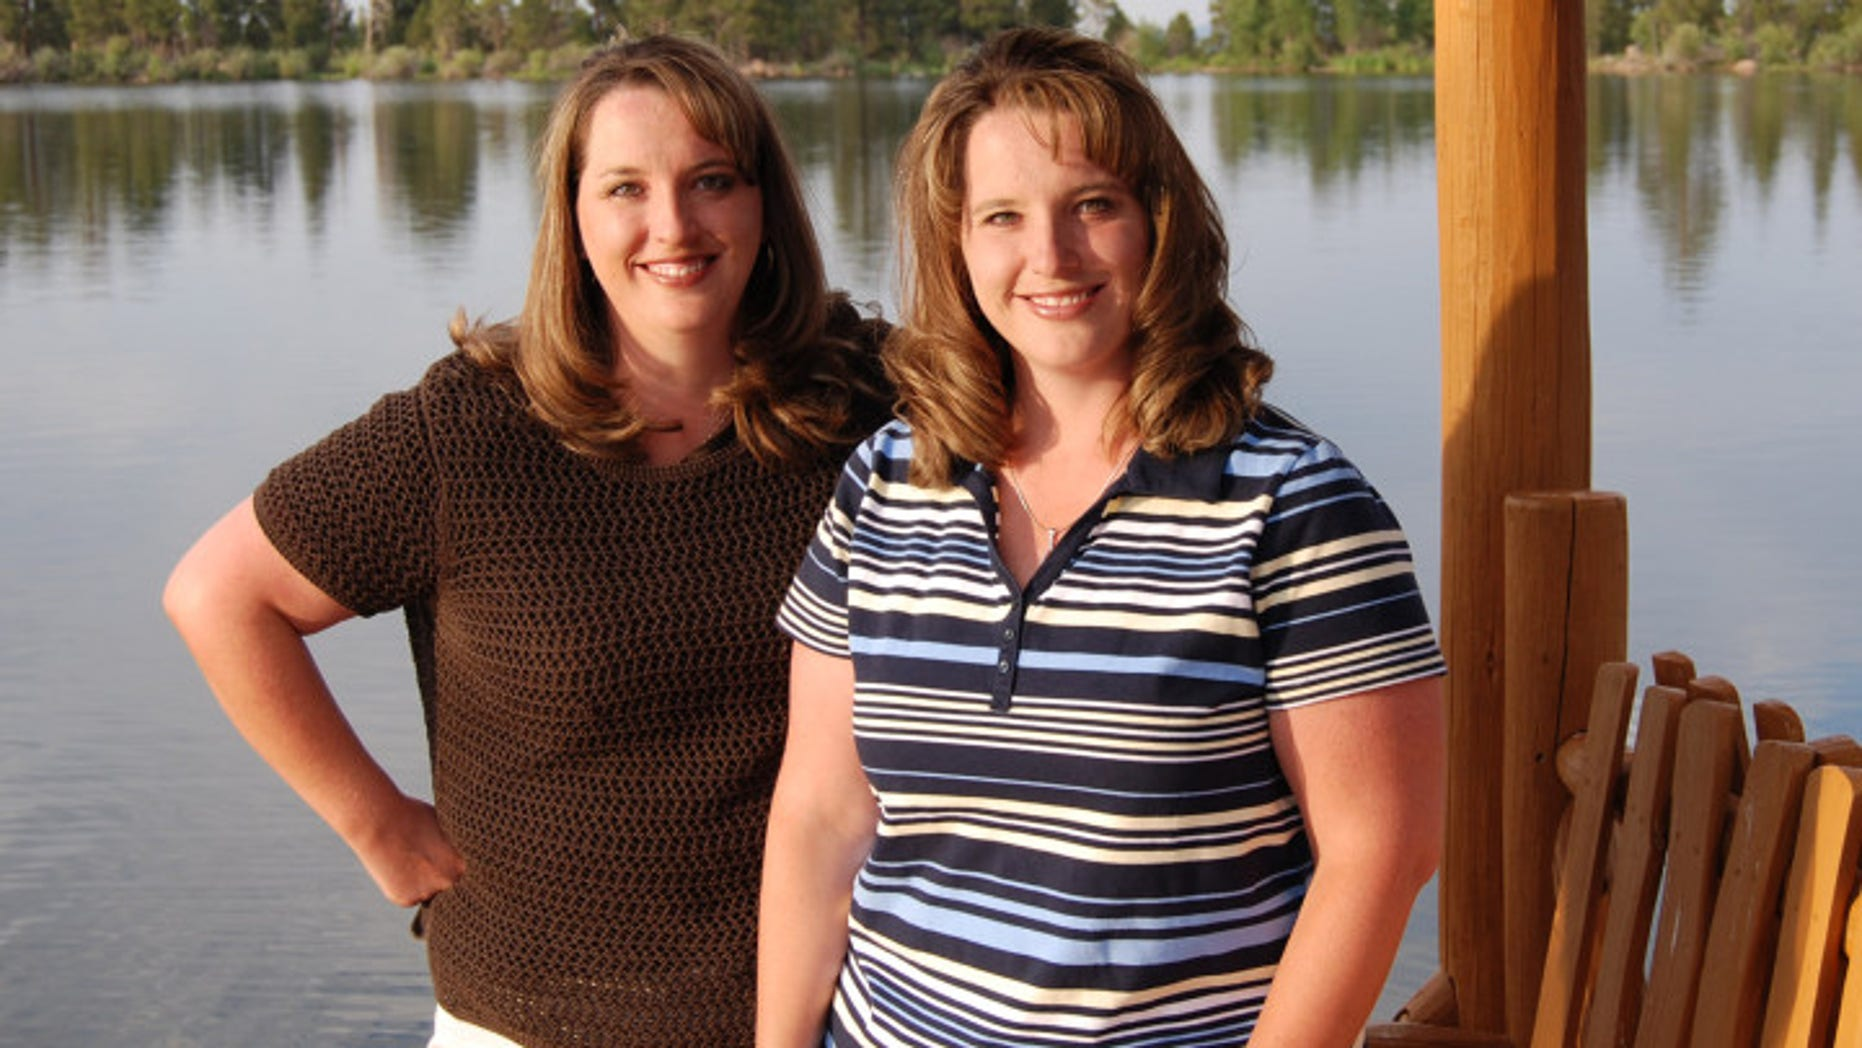 Twin sisters Kelli Wall, left, and Kerri Bunker are shown in this undated photo provided by Kerri Bunker.